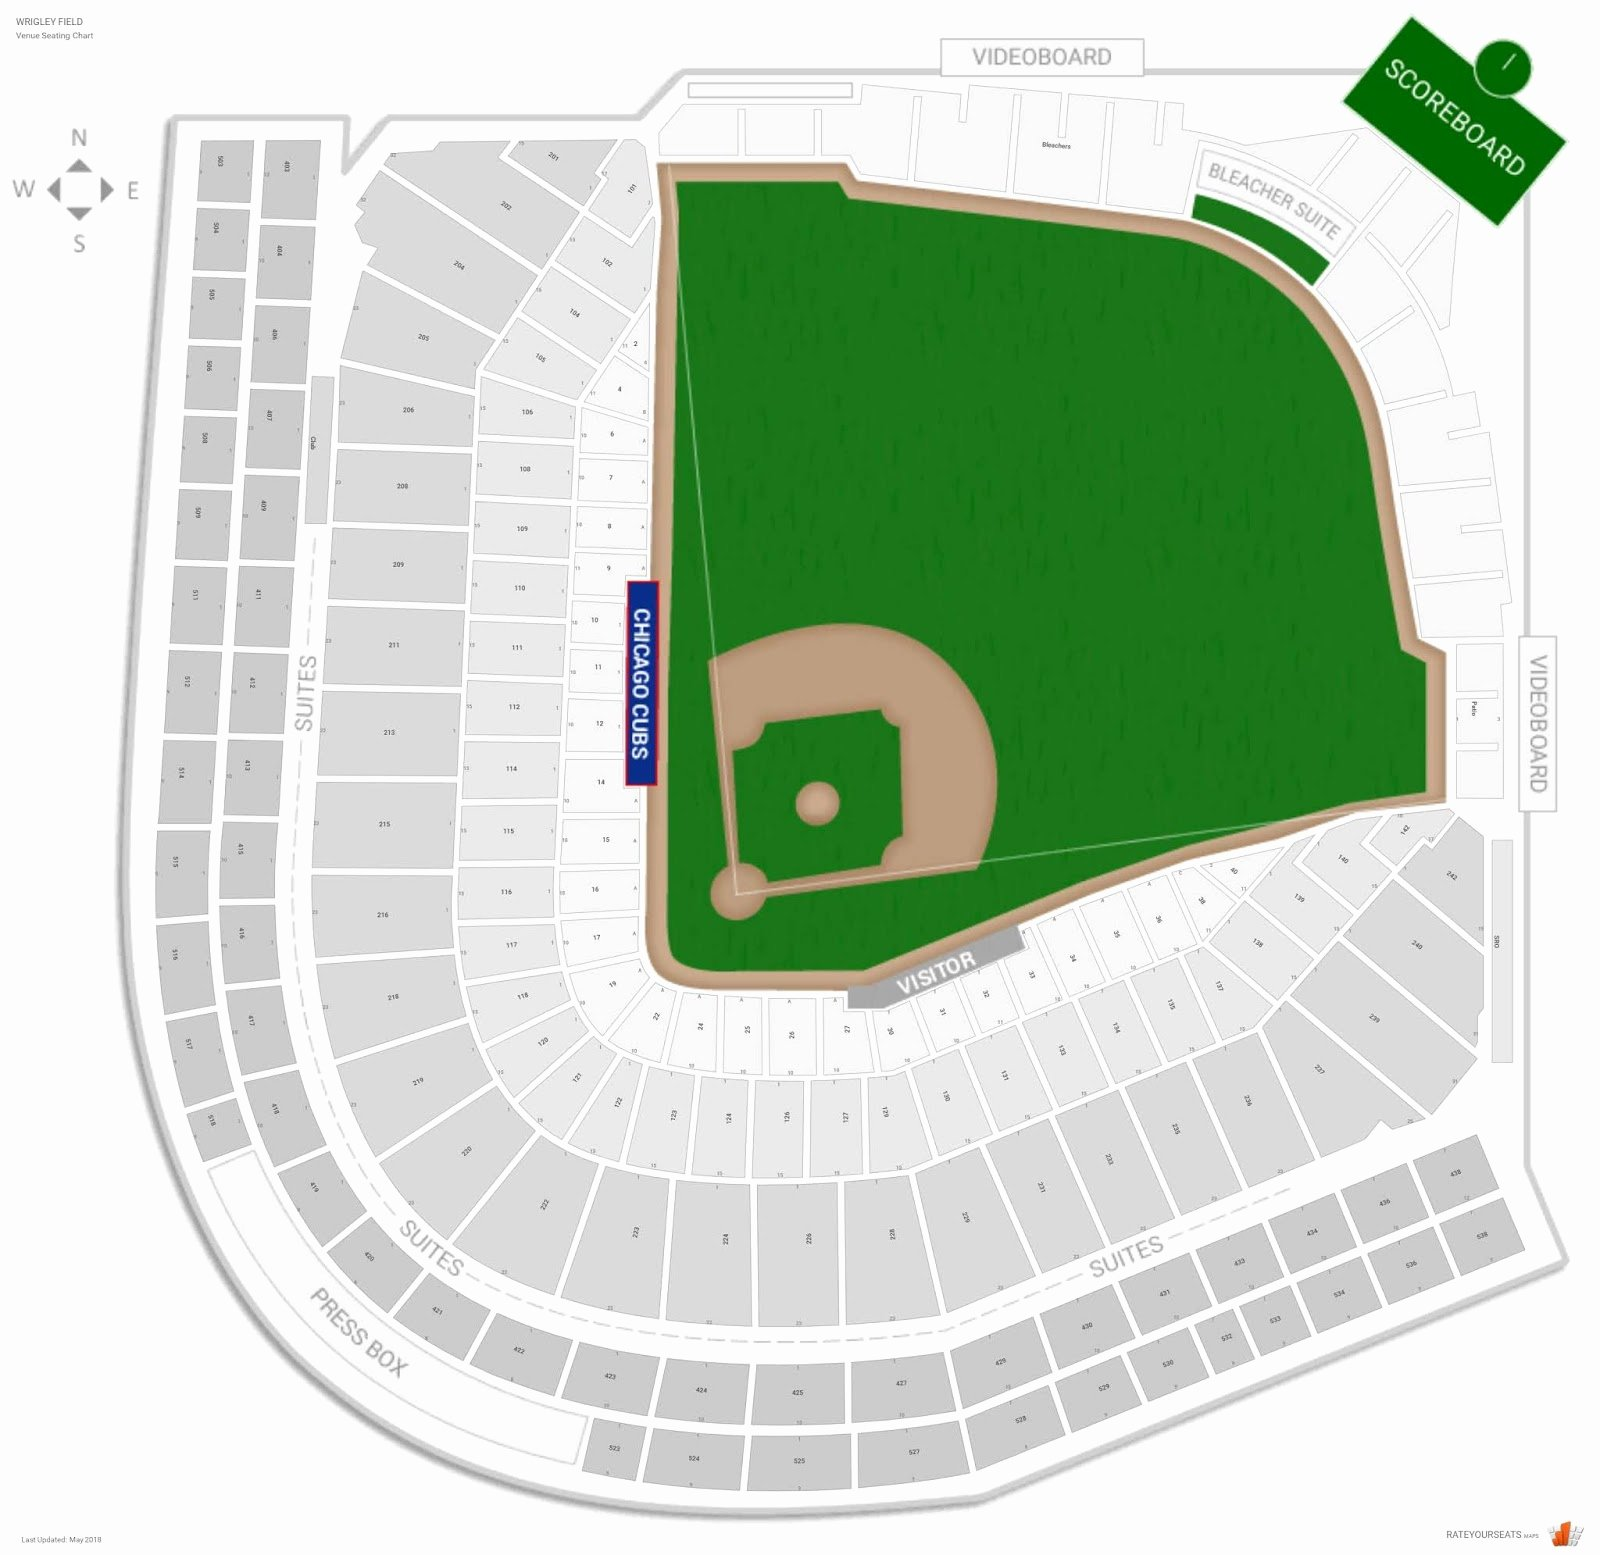 Wrigley Seating Chart Seat Numbers Inspirational Fresh Wrigley Field Seating Chart with Seat Numbers